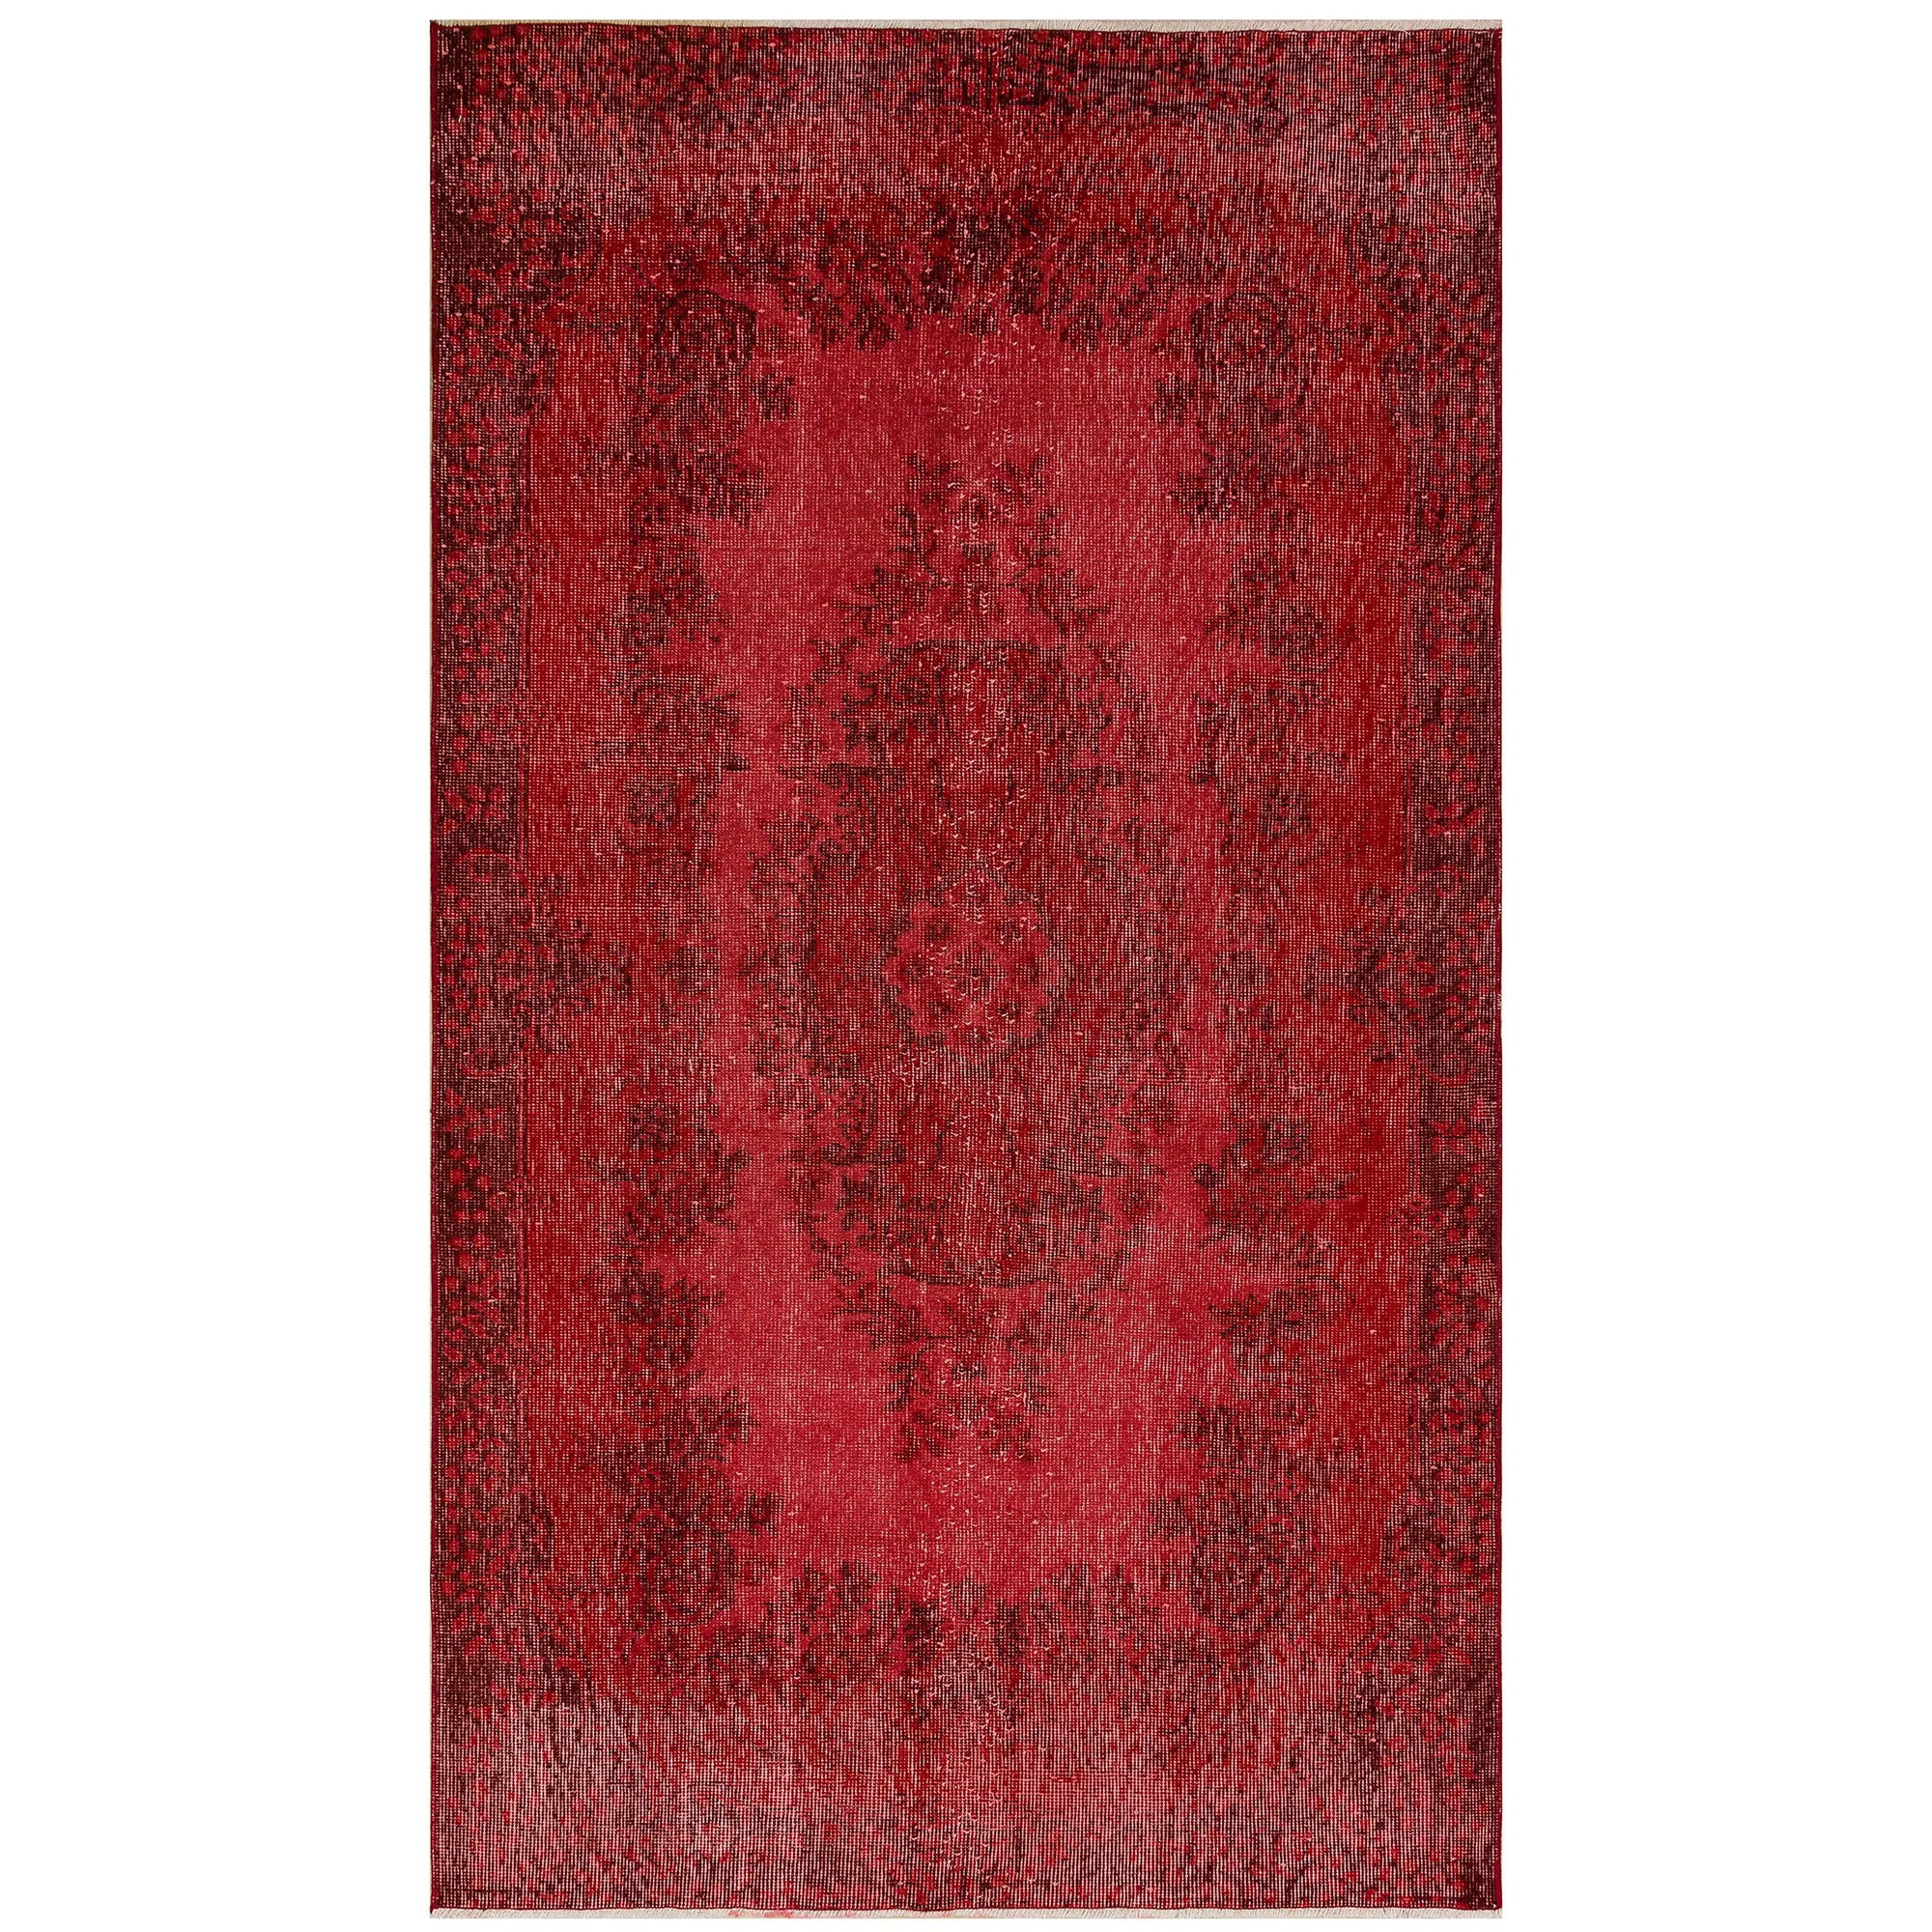 118 X 208 Anatolian Hand Knotted Carpet Vintage Style 60N2675 -  118 × 208 سجادة أناضولية معقودة يدويًا - Shop Online Furniture and Home Decor Store in Dubai, UAE at ebarza